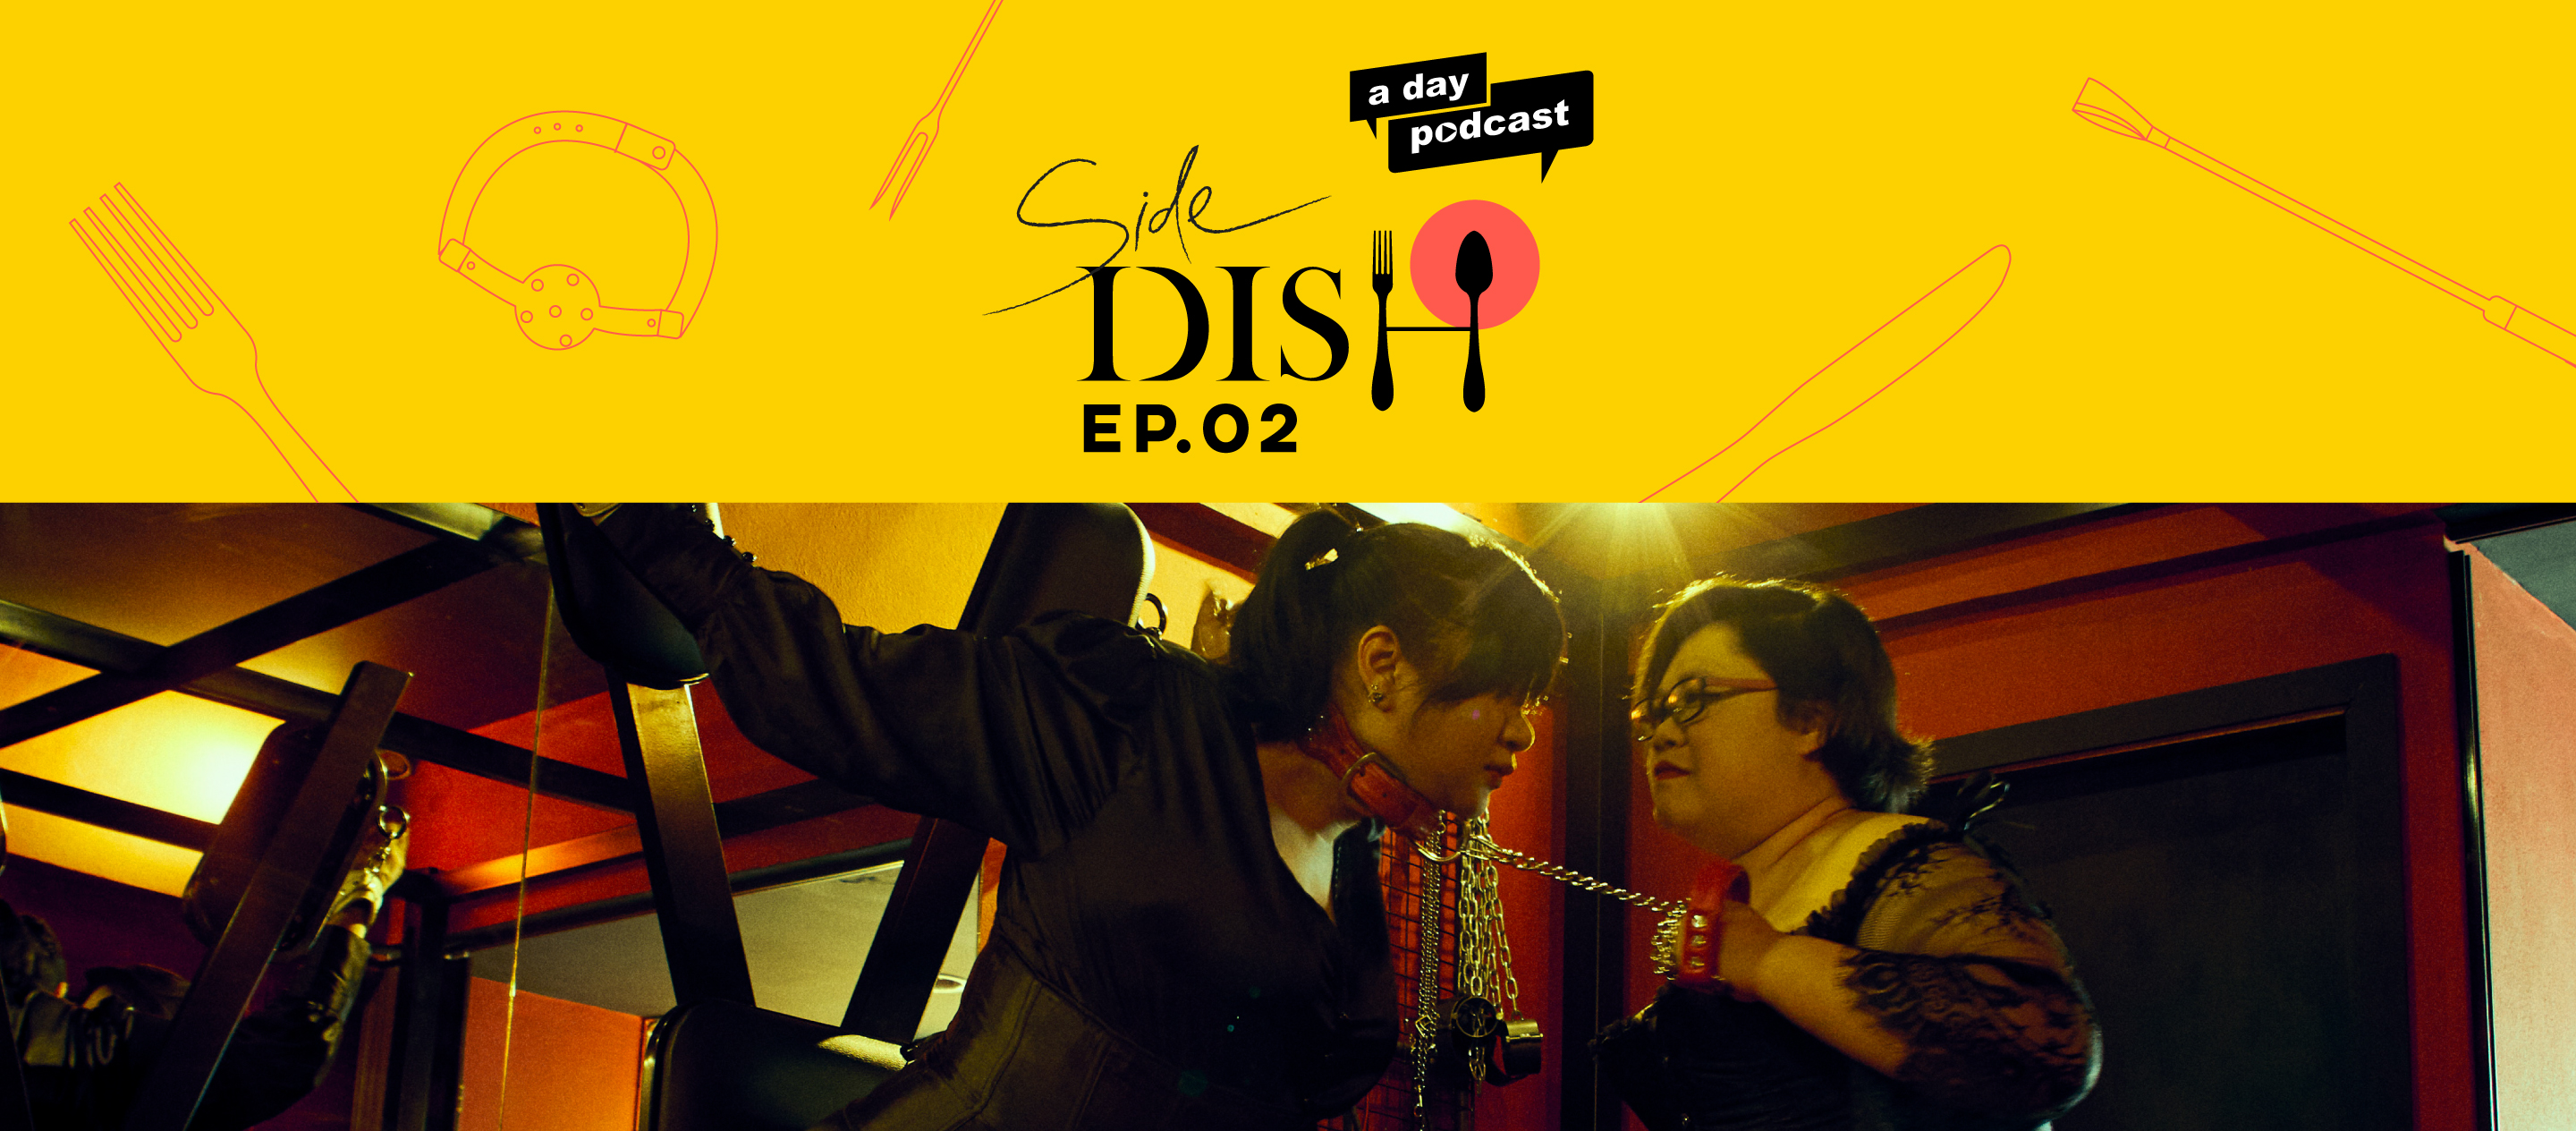 Side Dish EP.02 Hit me baby one more time แชร์ประสบการณ์ BDSM ใน a day ฉบับ sex is more